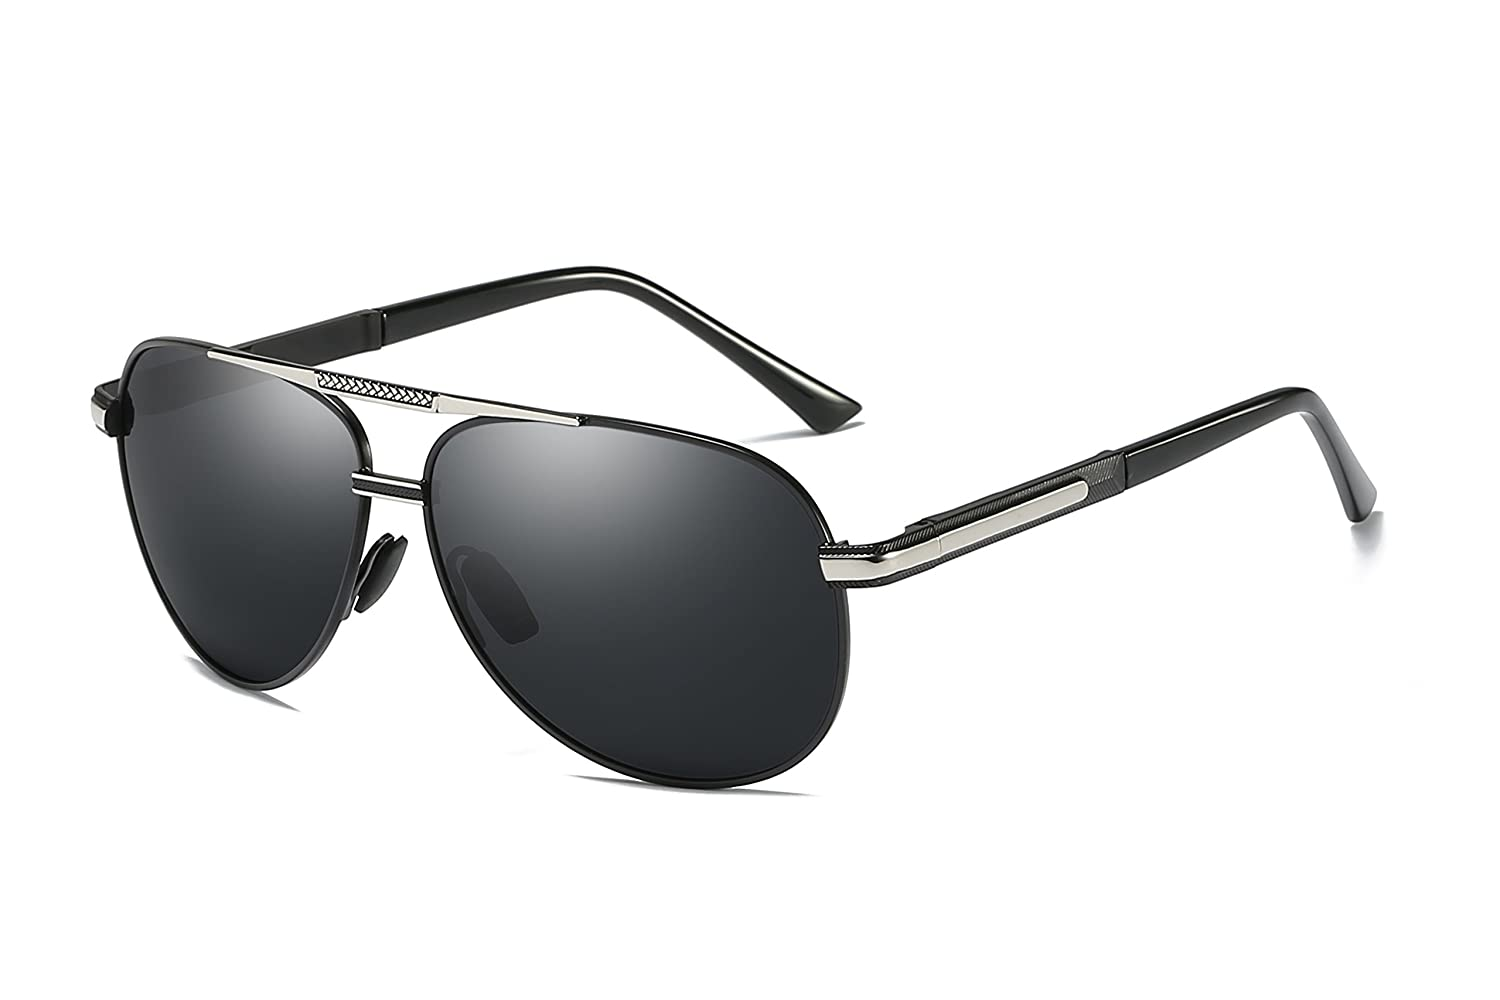 62cd643e4c83 metal frame. Composite lens. Polarized sunglasses reduce glare reflected  off of roads